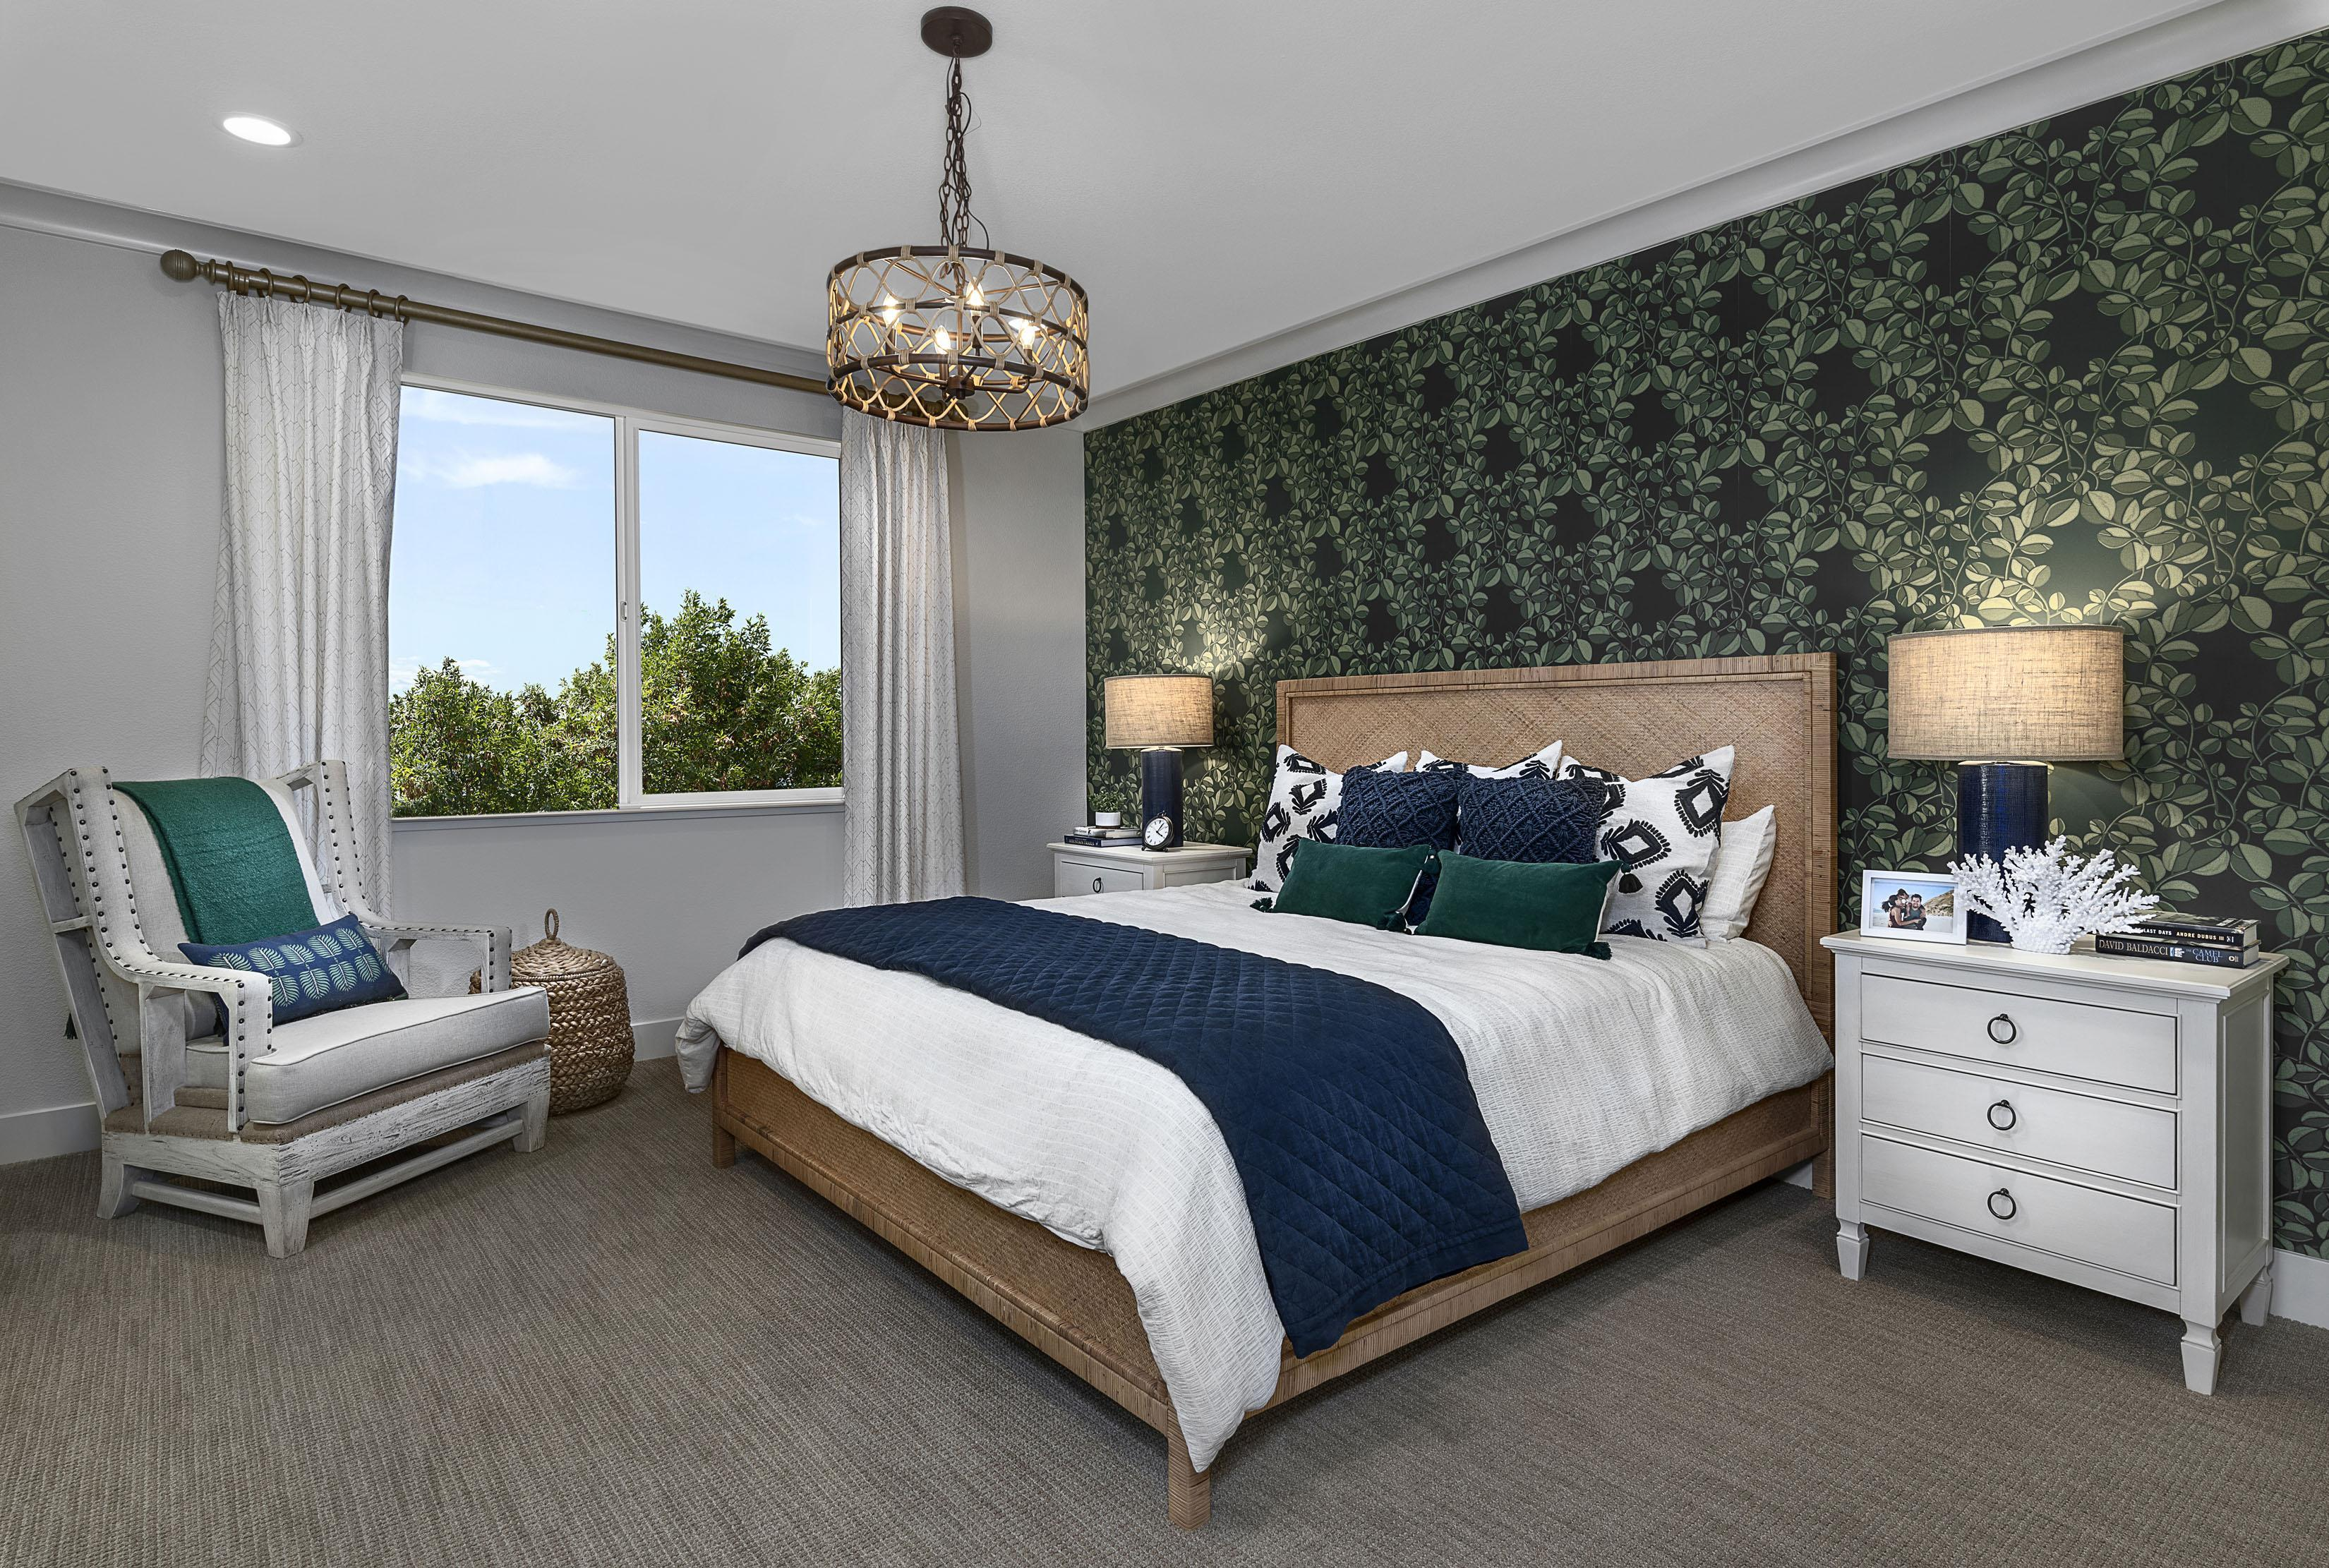 Bedroom featured in the Catalina Residence 2 By Kiper Homes in Stockton-Lodi, CA